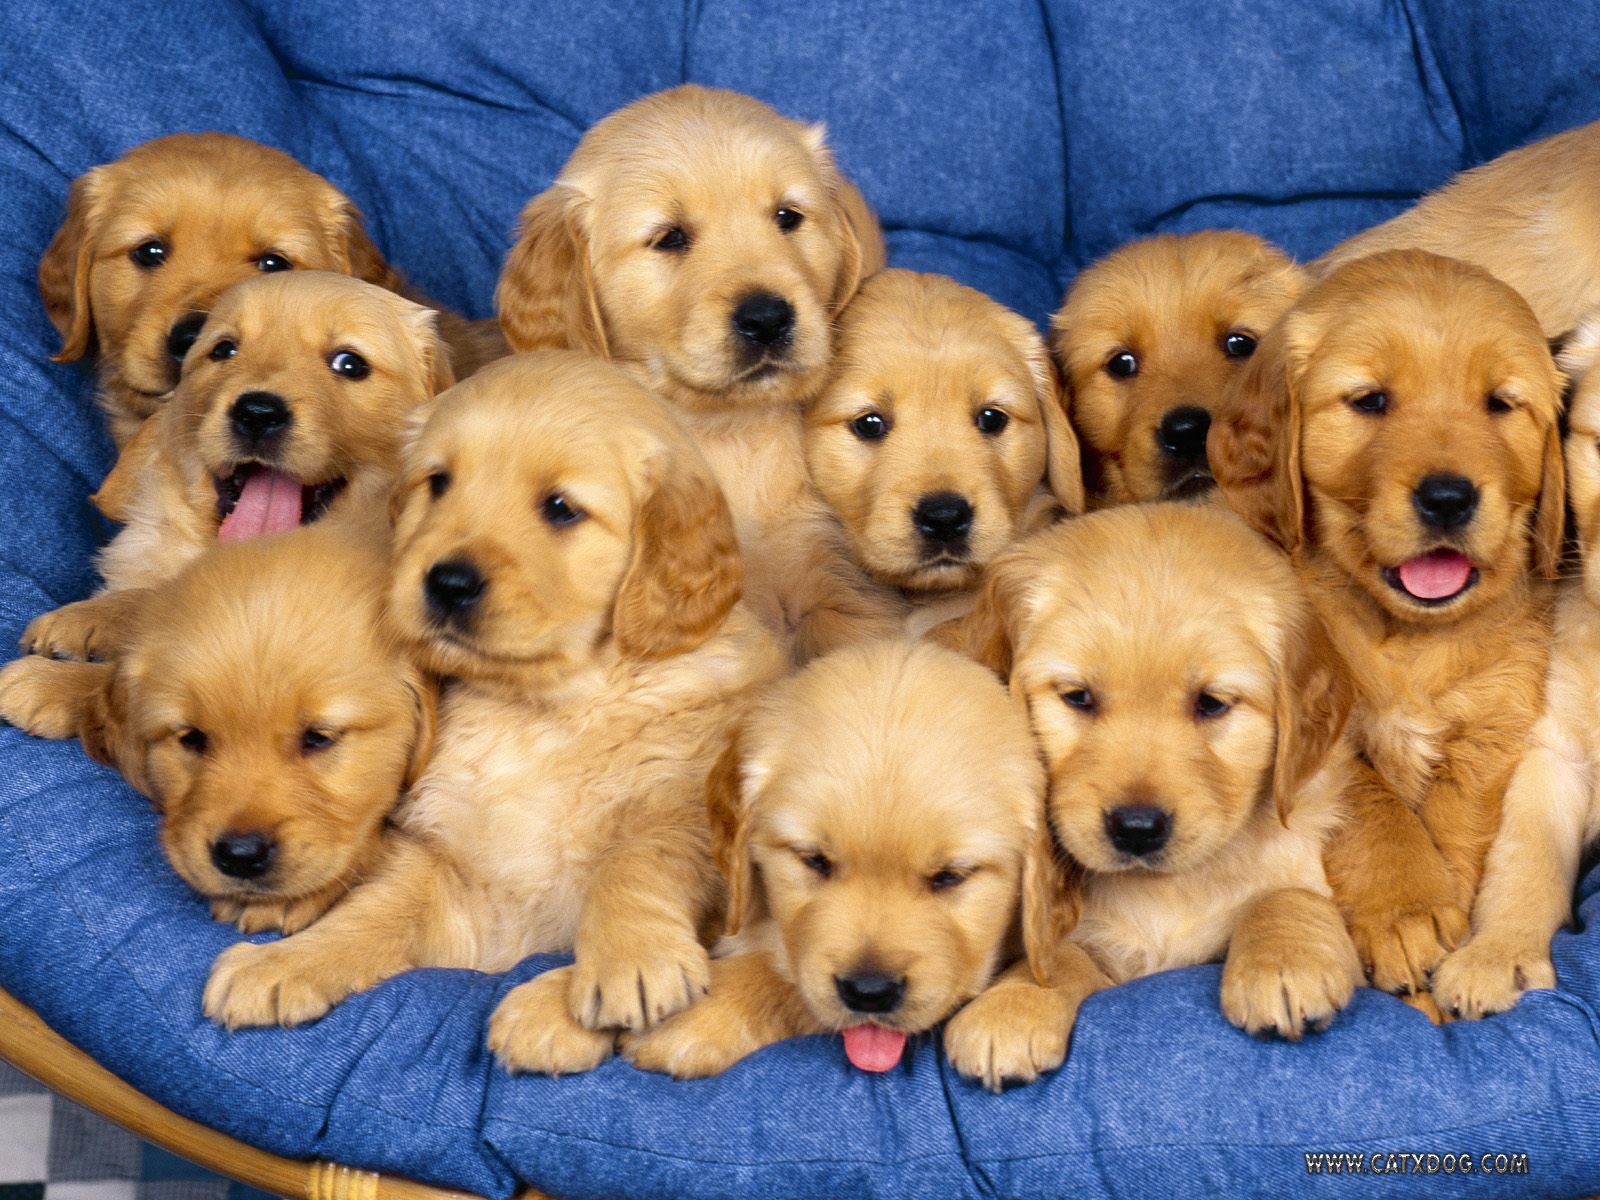 Funny Animals Wallpapers Very Cute Puppies 1600x1200